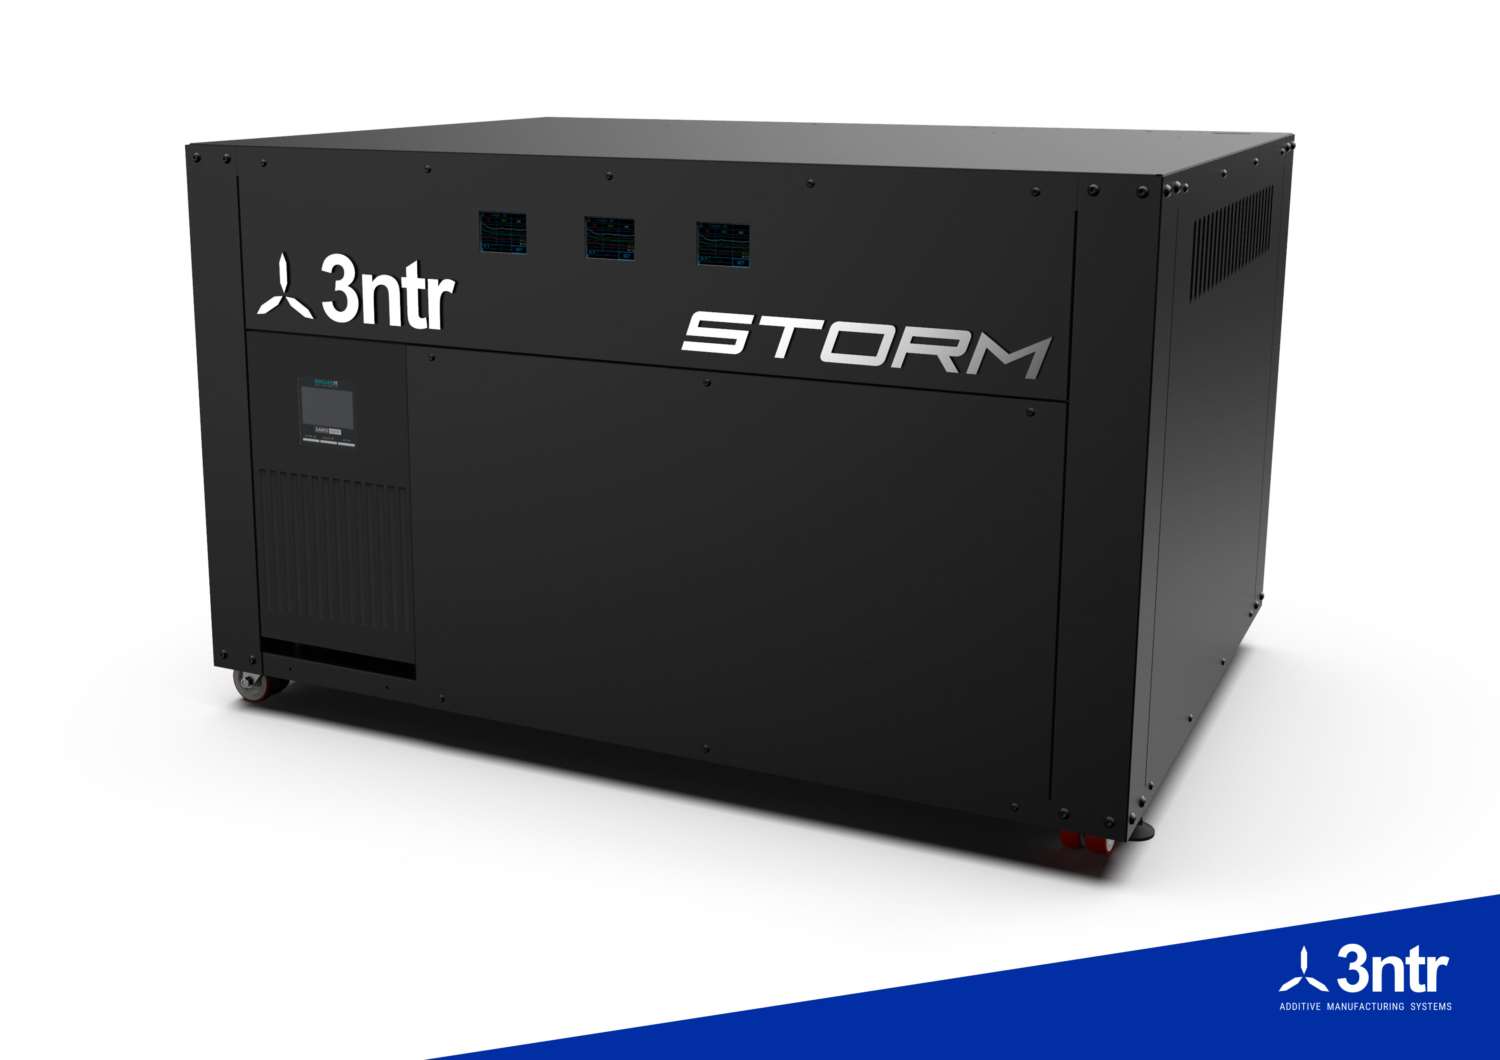 Storm polymer drying unit by 3ntr for 3d printing